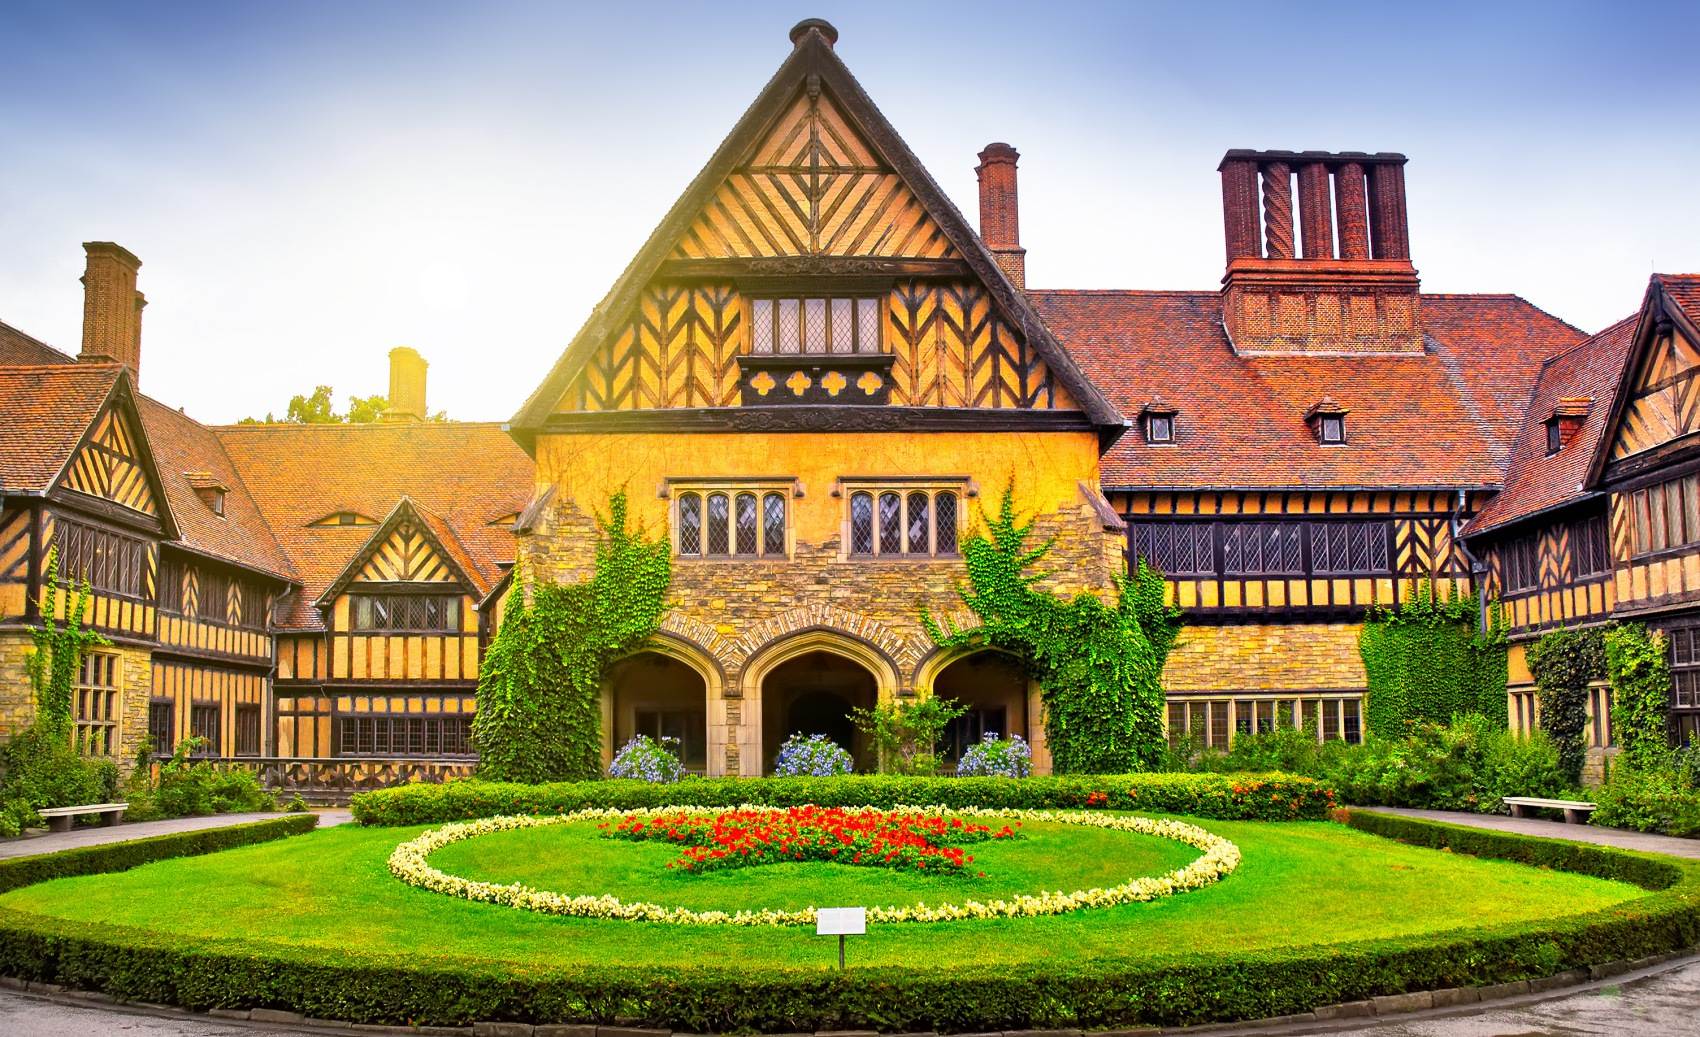 Cecilienhof Palace in Germany